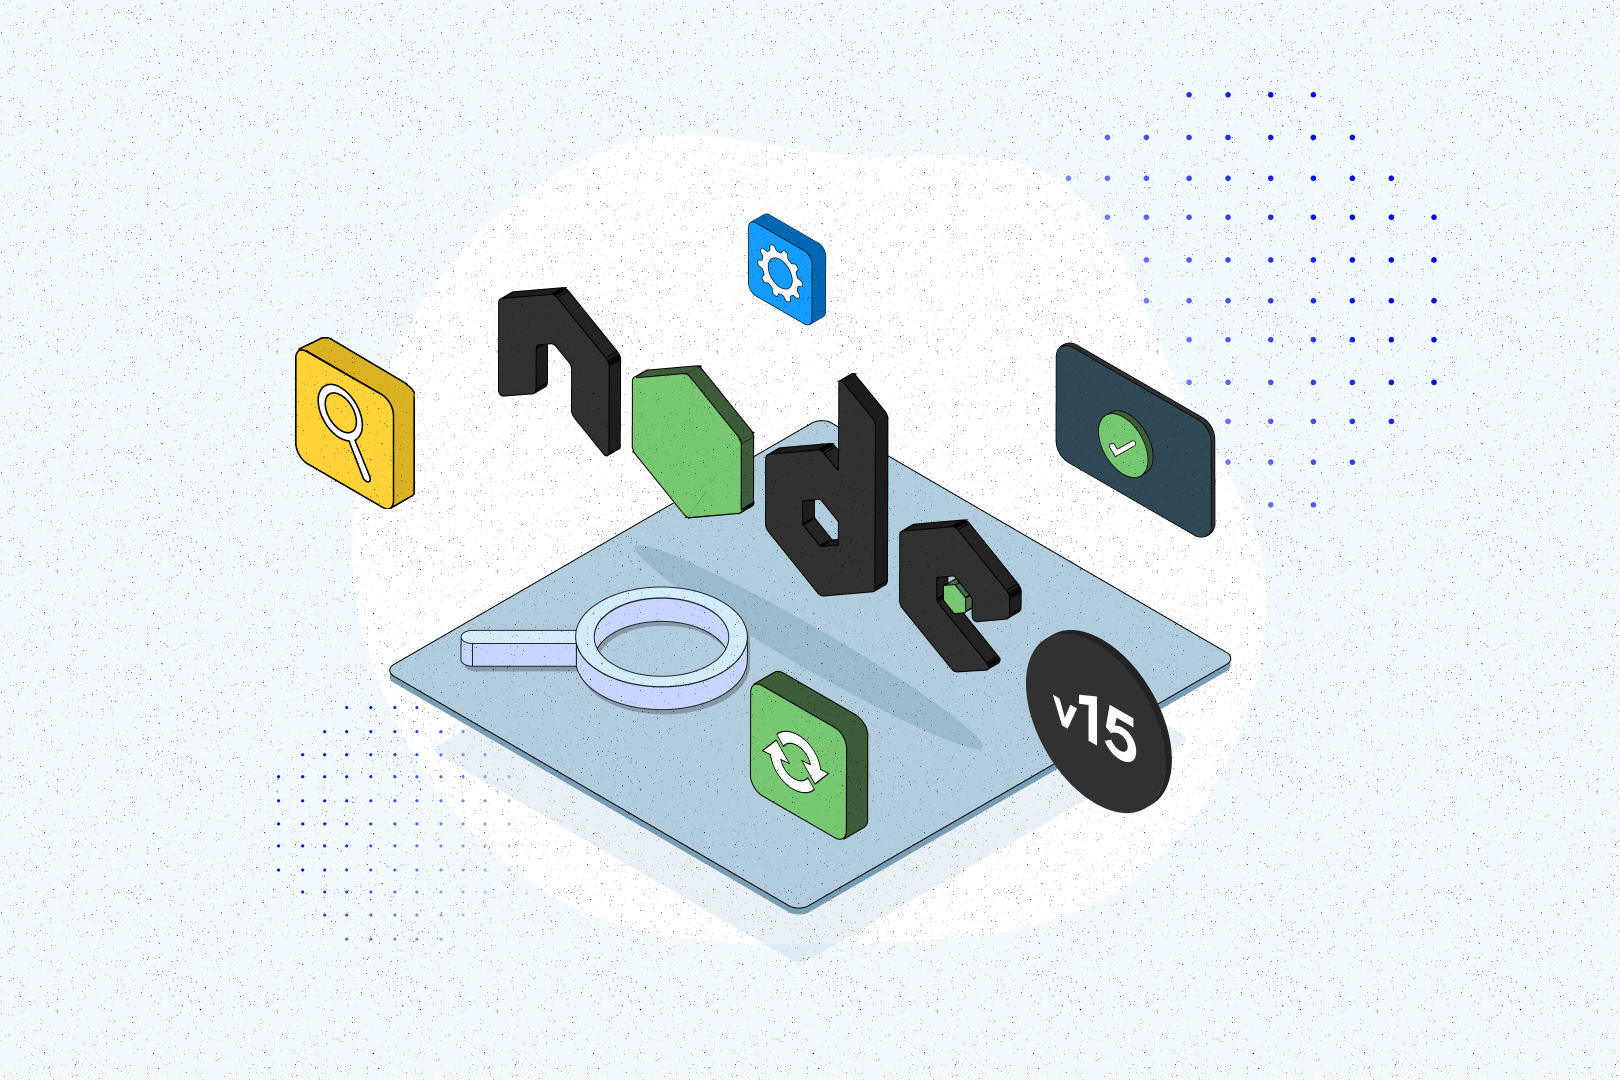 New Node.js 14-15 features will disrupt AI, IoT & more. Node latest version report